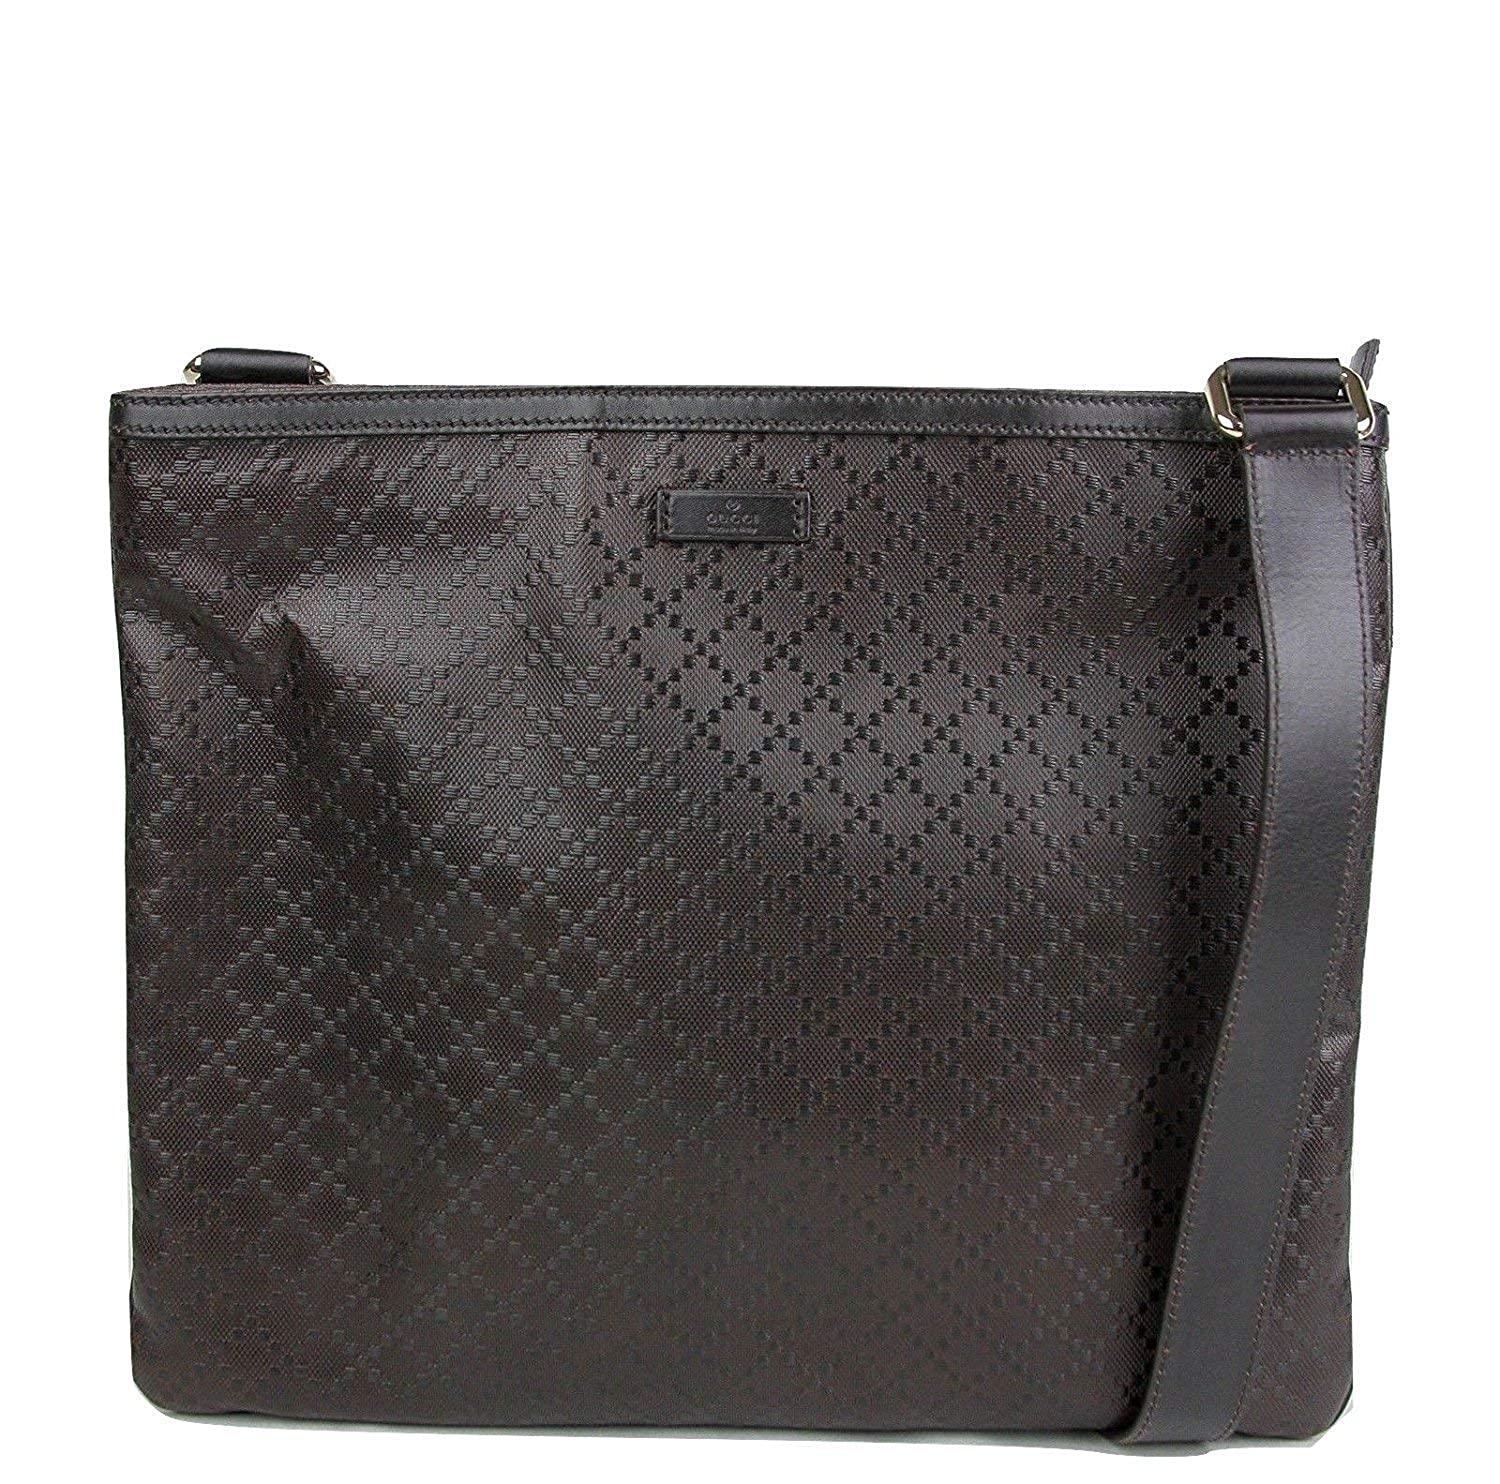 ebfbd4be70c8 Amazon.com: Gucci Hilary Dark Brown Lux Diamante Leather Messenger Bag  201446 2044: Shoes